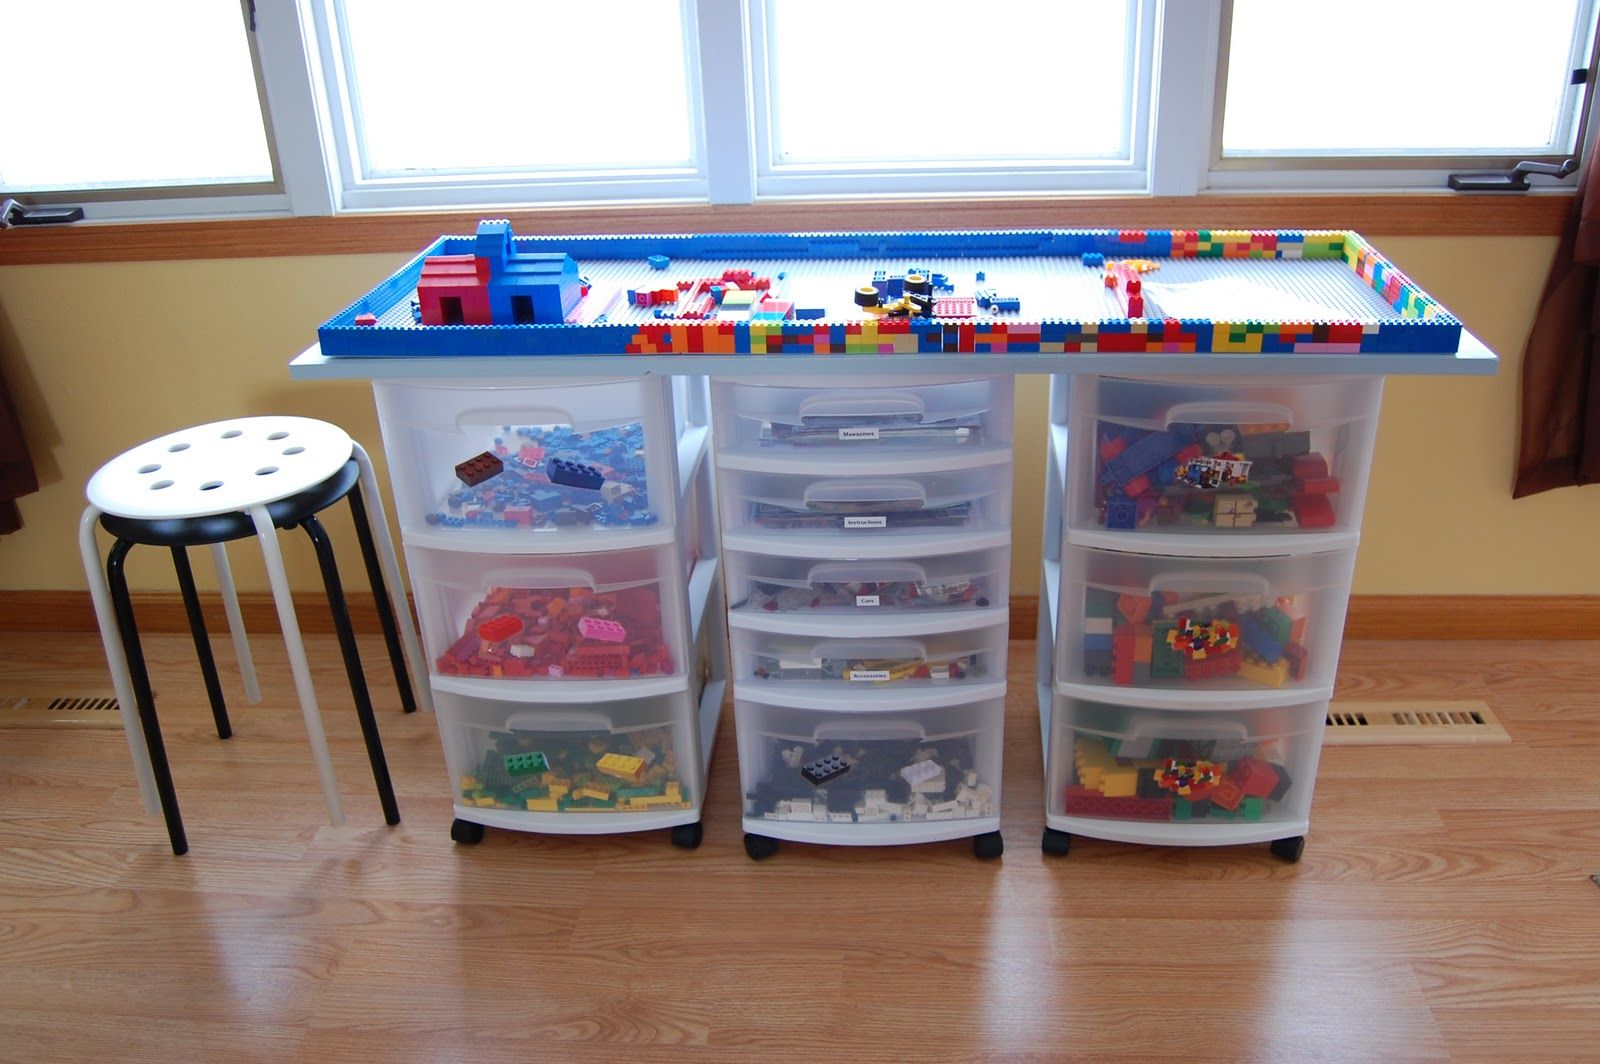 Unusual Outdoor Toys For Boys   Nice White Transparent Lego Storage Units  With Wheels For Flexibility